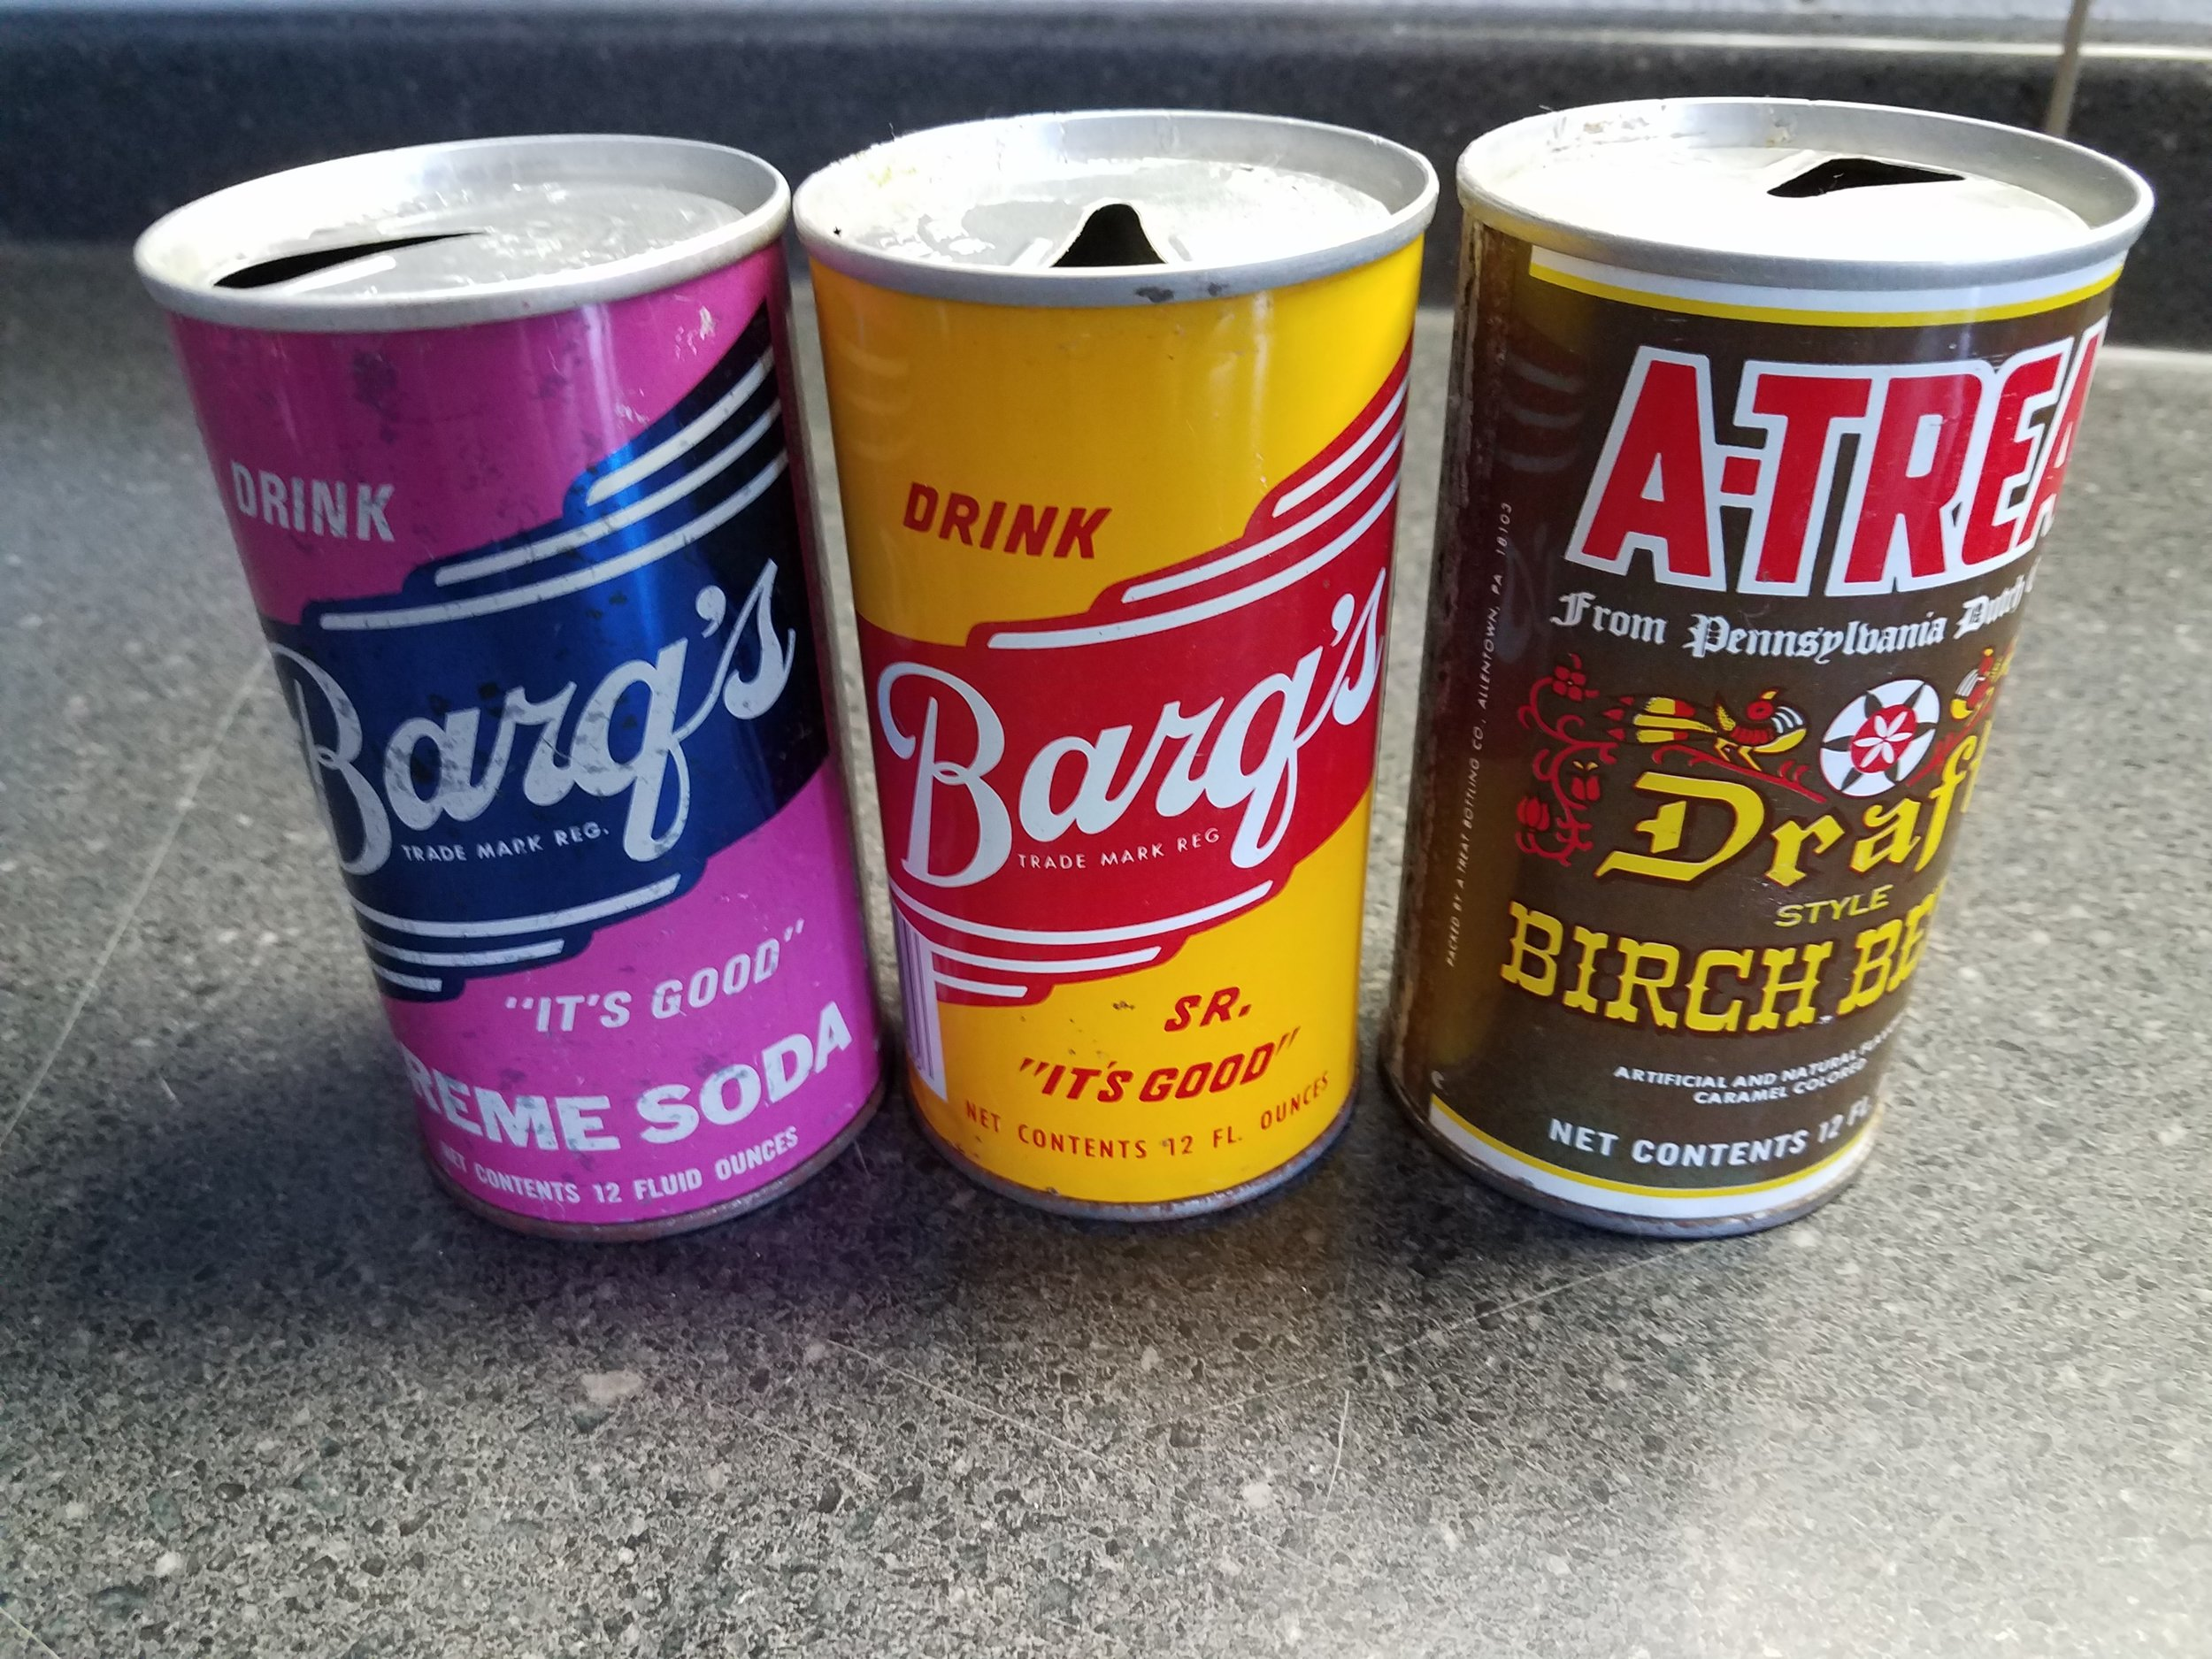 Barqs and A-treat